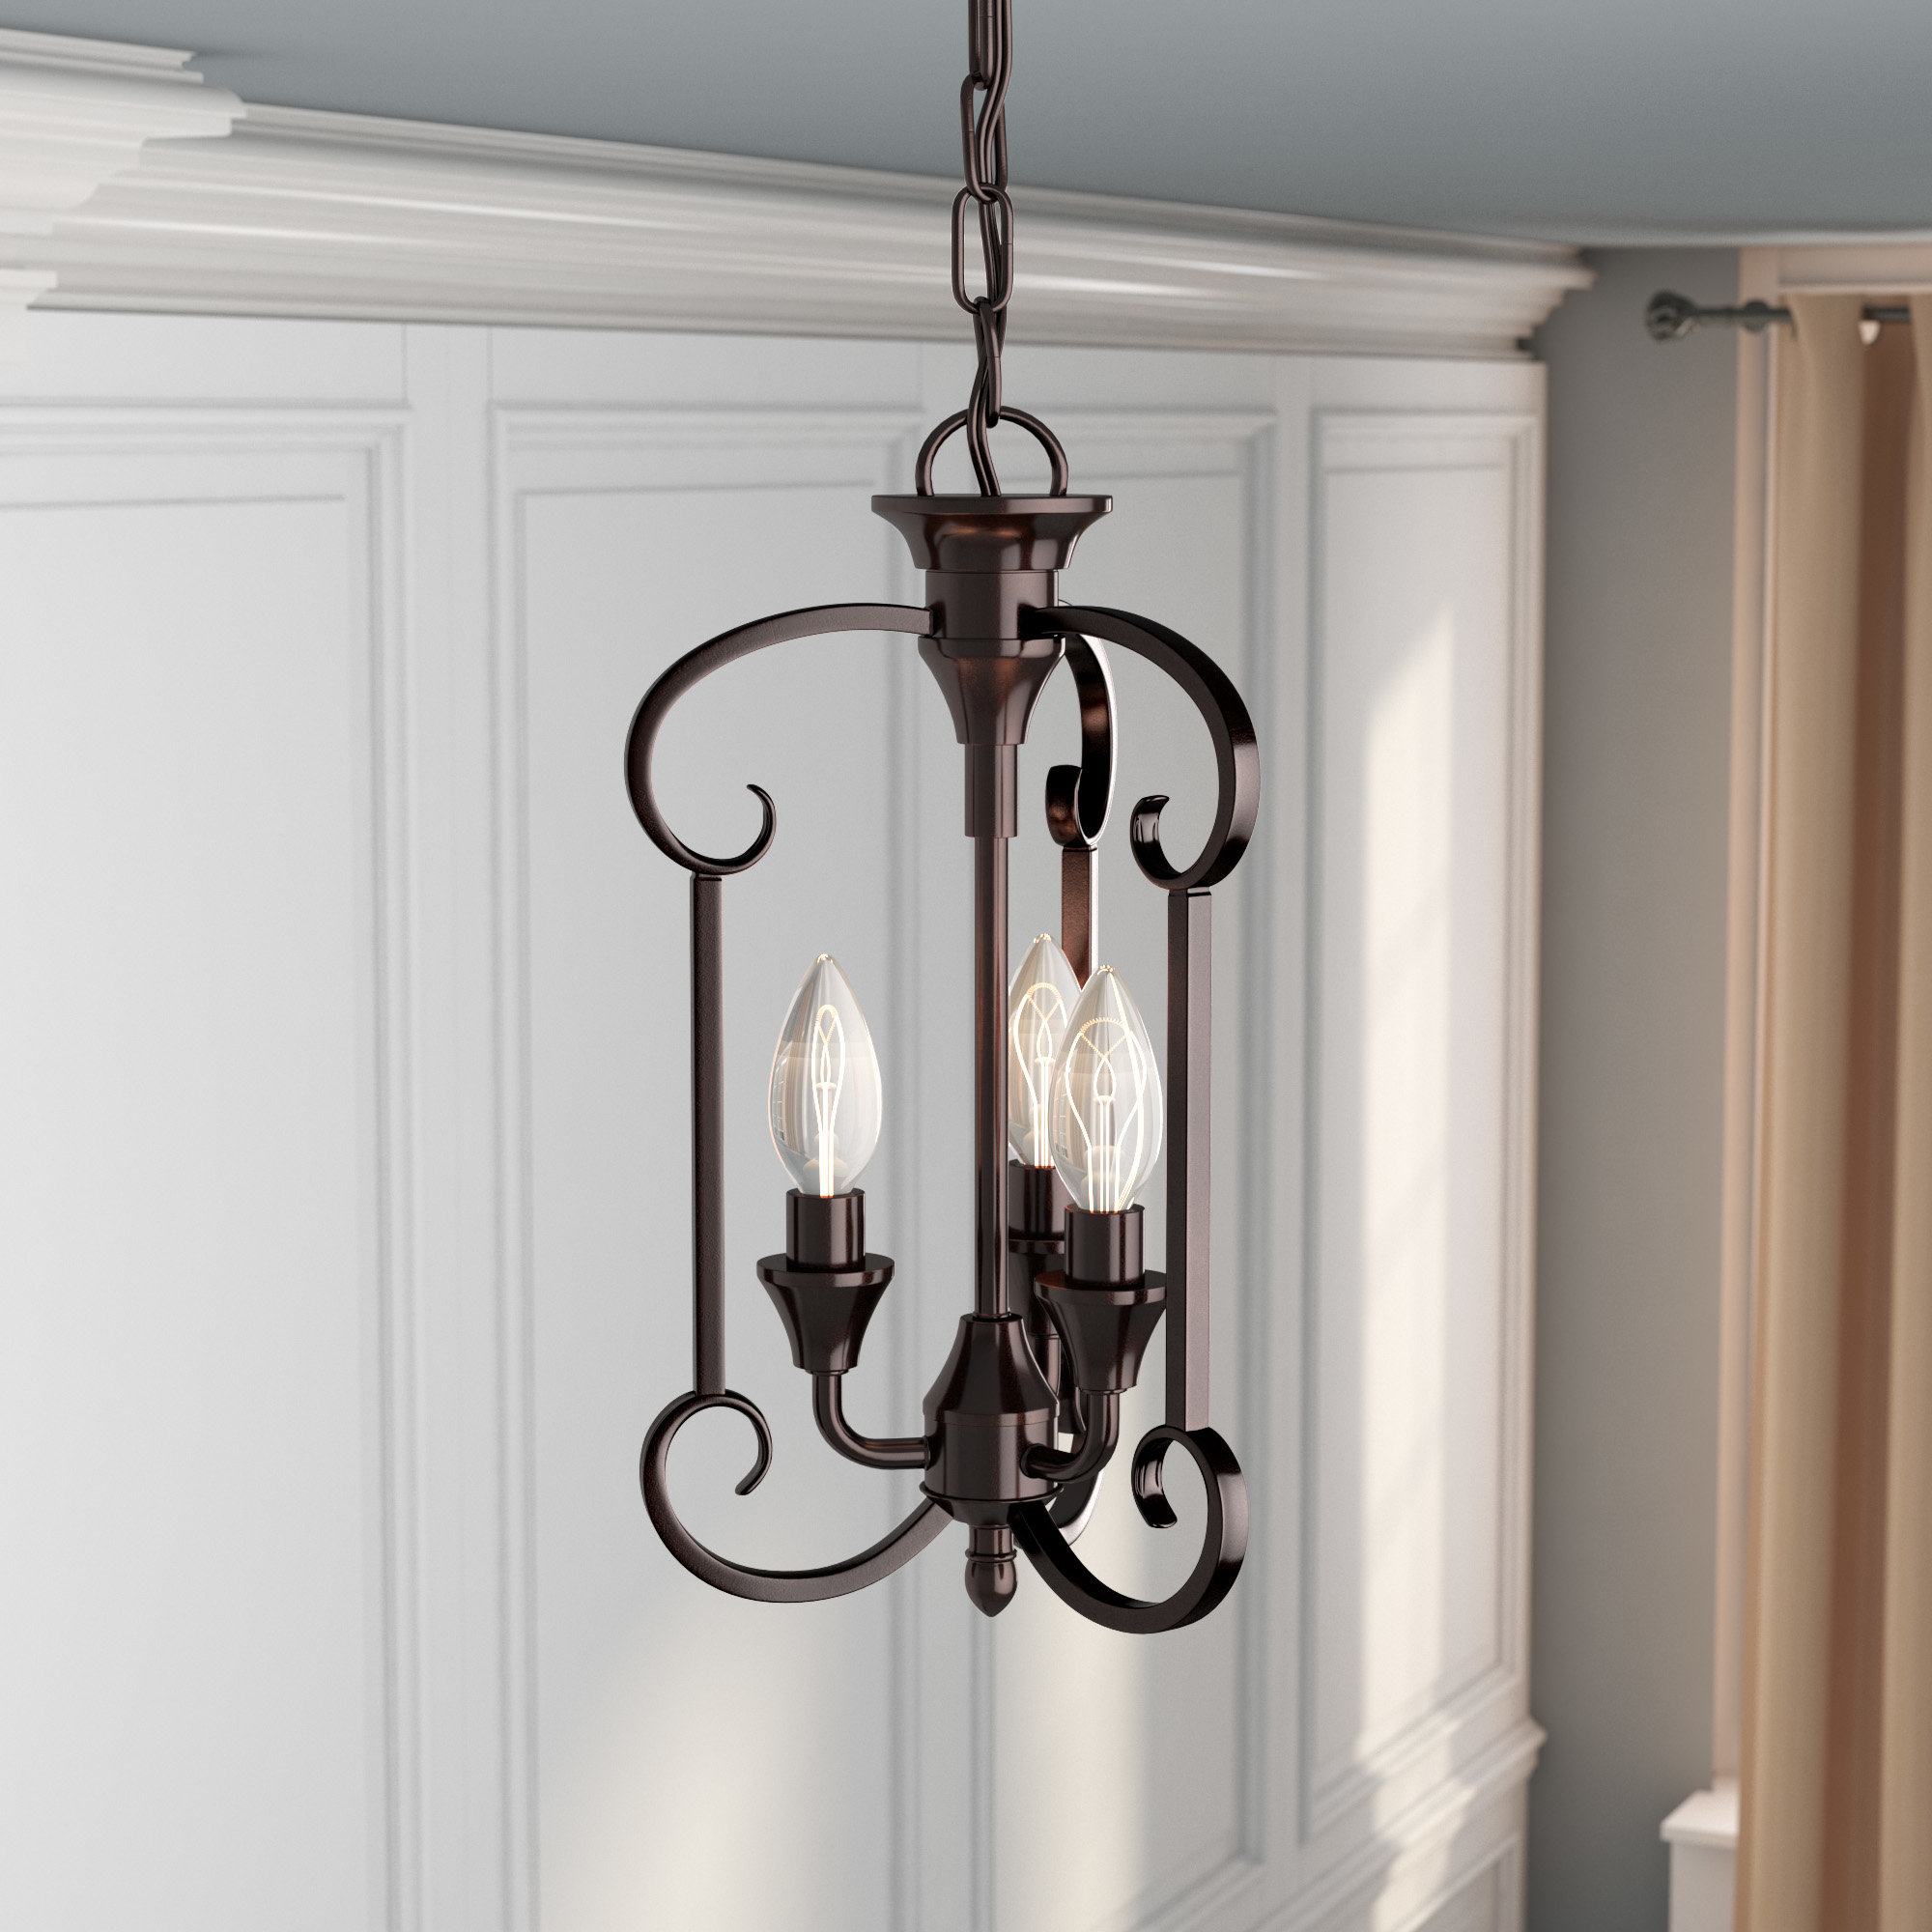 Preferred Warner Robins 3 Light Lantern Pendants Regarding Warner Robins 3 Light Lantern Pendant (Gallery 1 of 20)